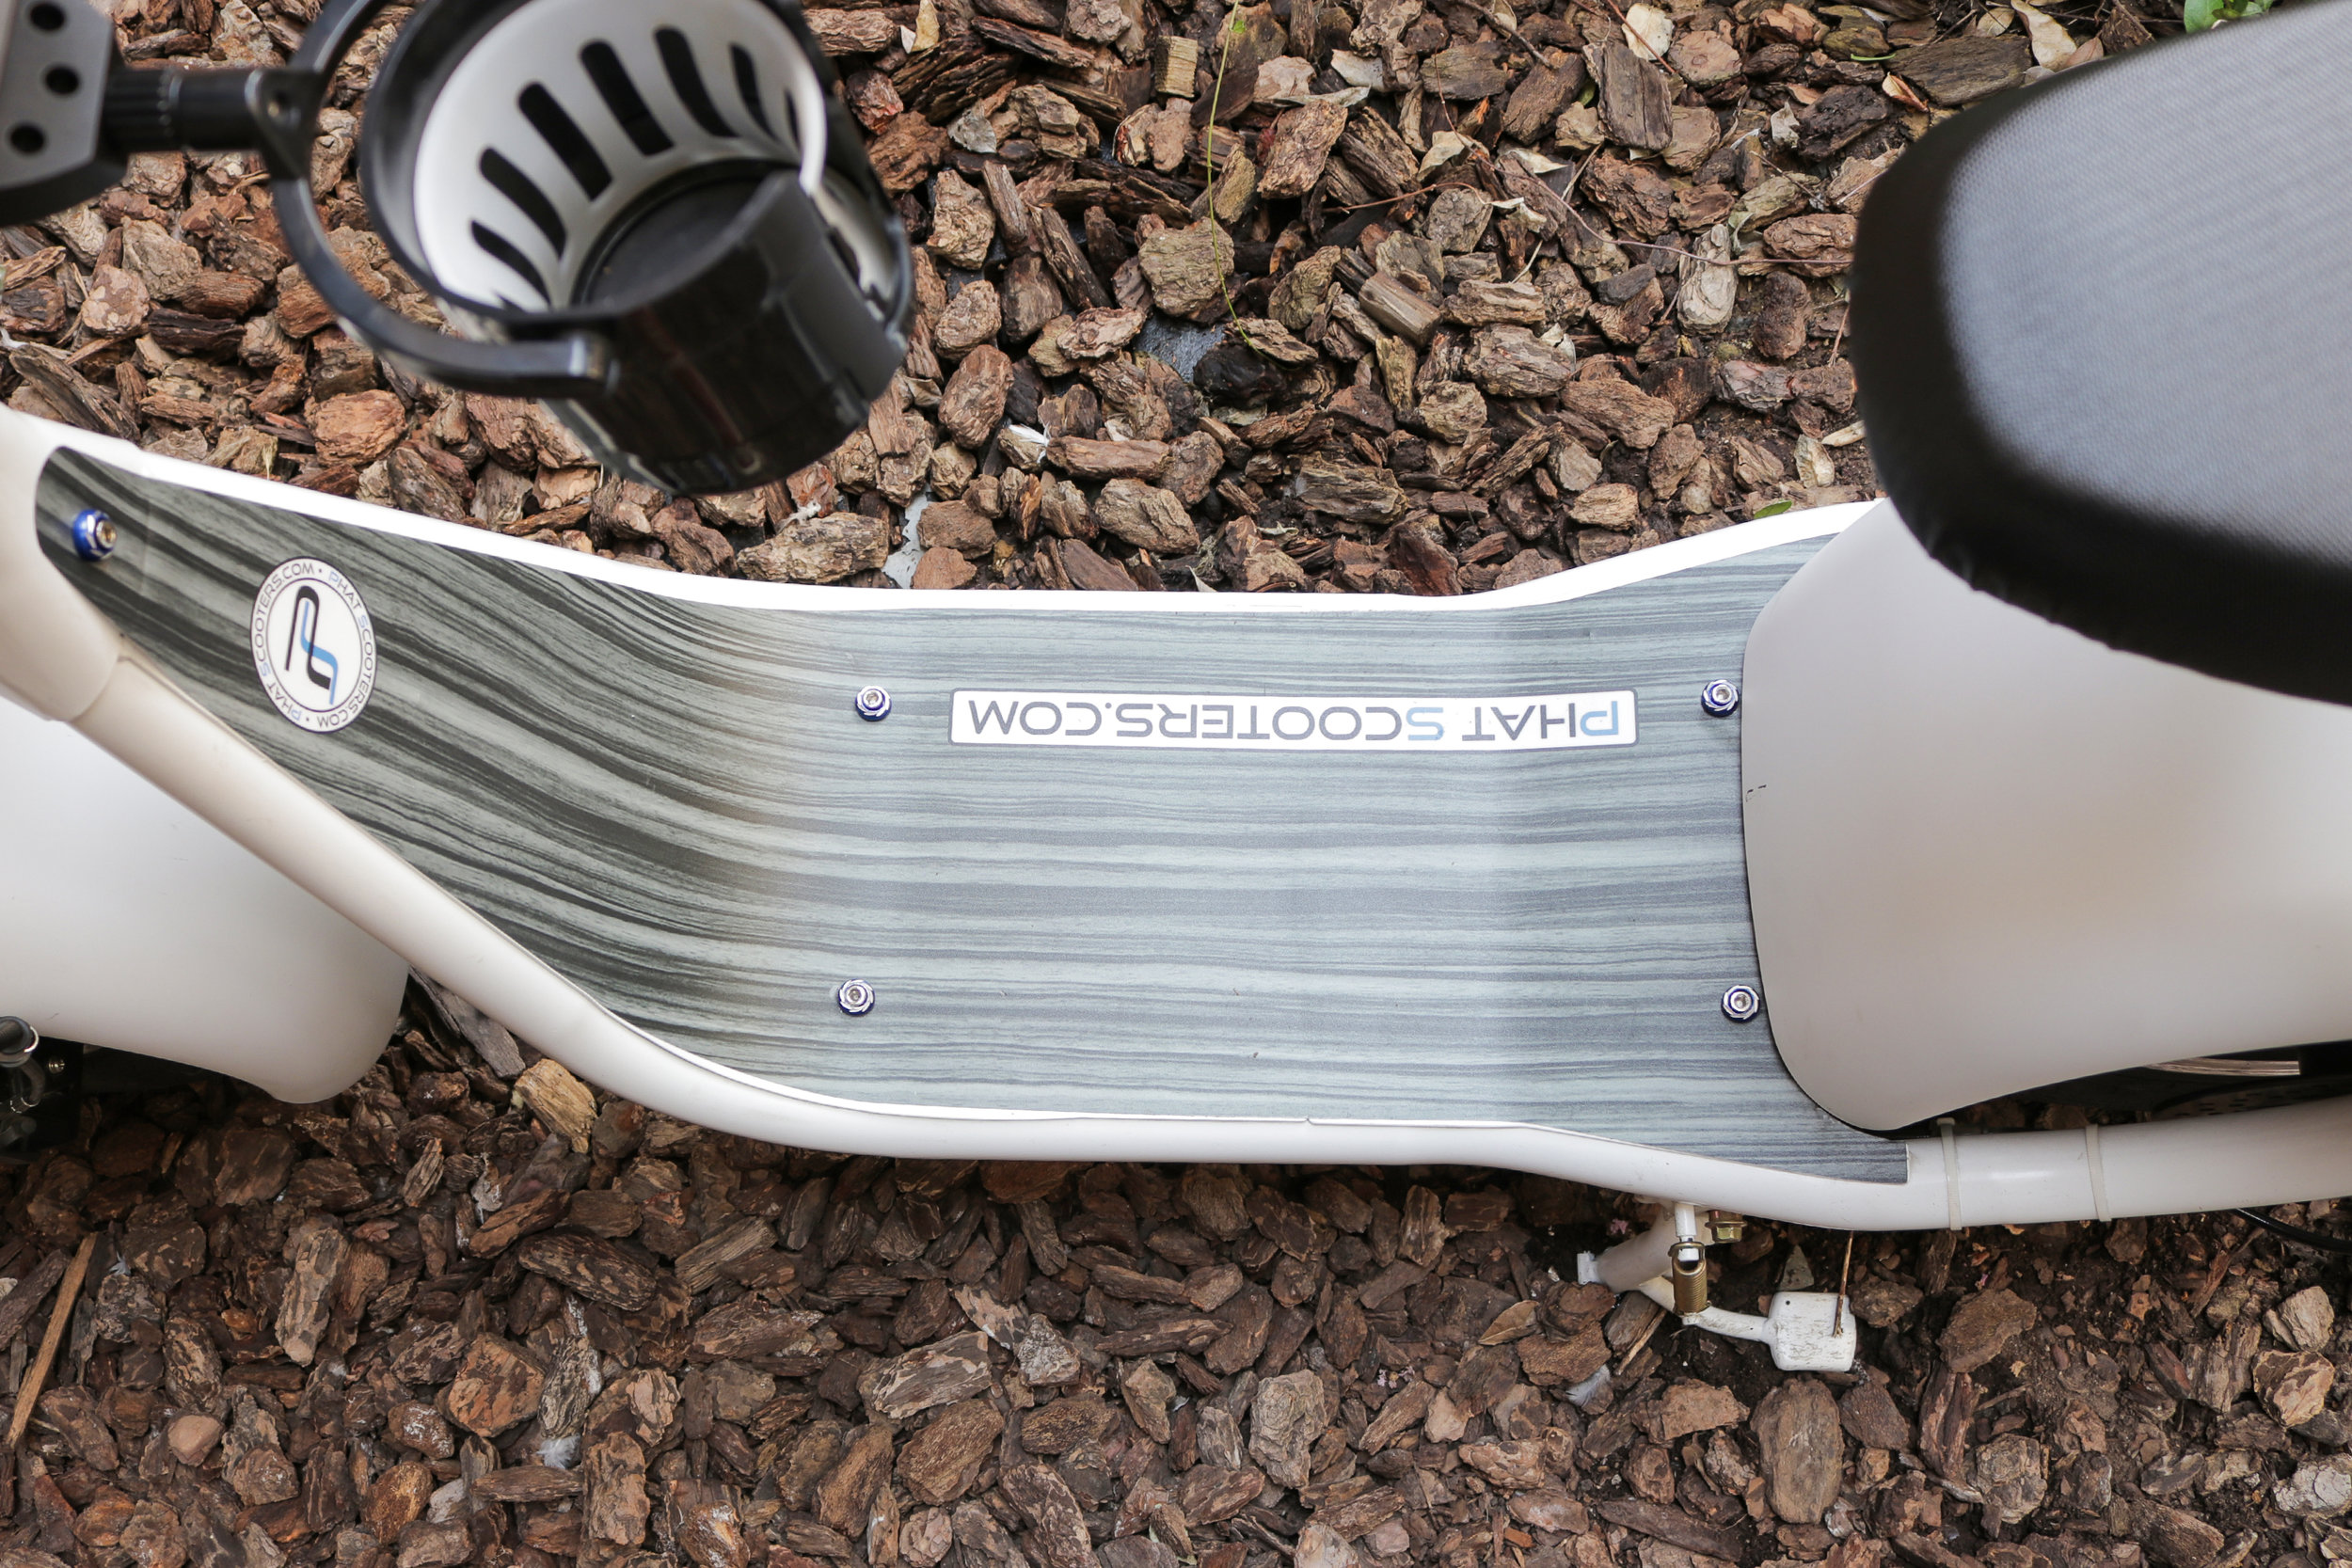 electrified-reviews-phat-scooter-sport-electric-scooter-review-deck.jpg